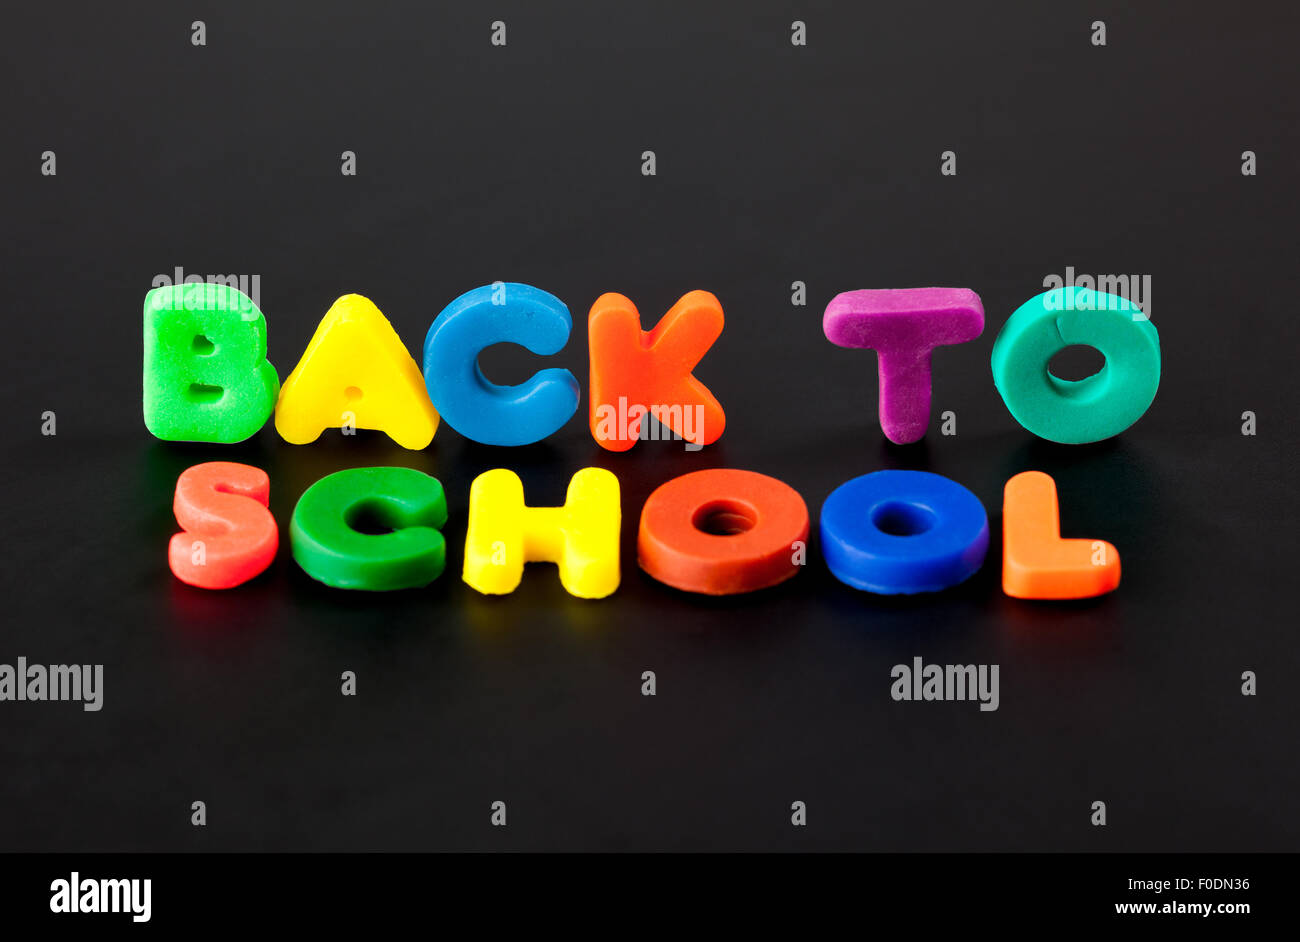 Words Back to school on black background. Letters made of child's play clay. - Stock Image